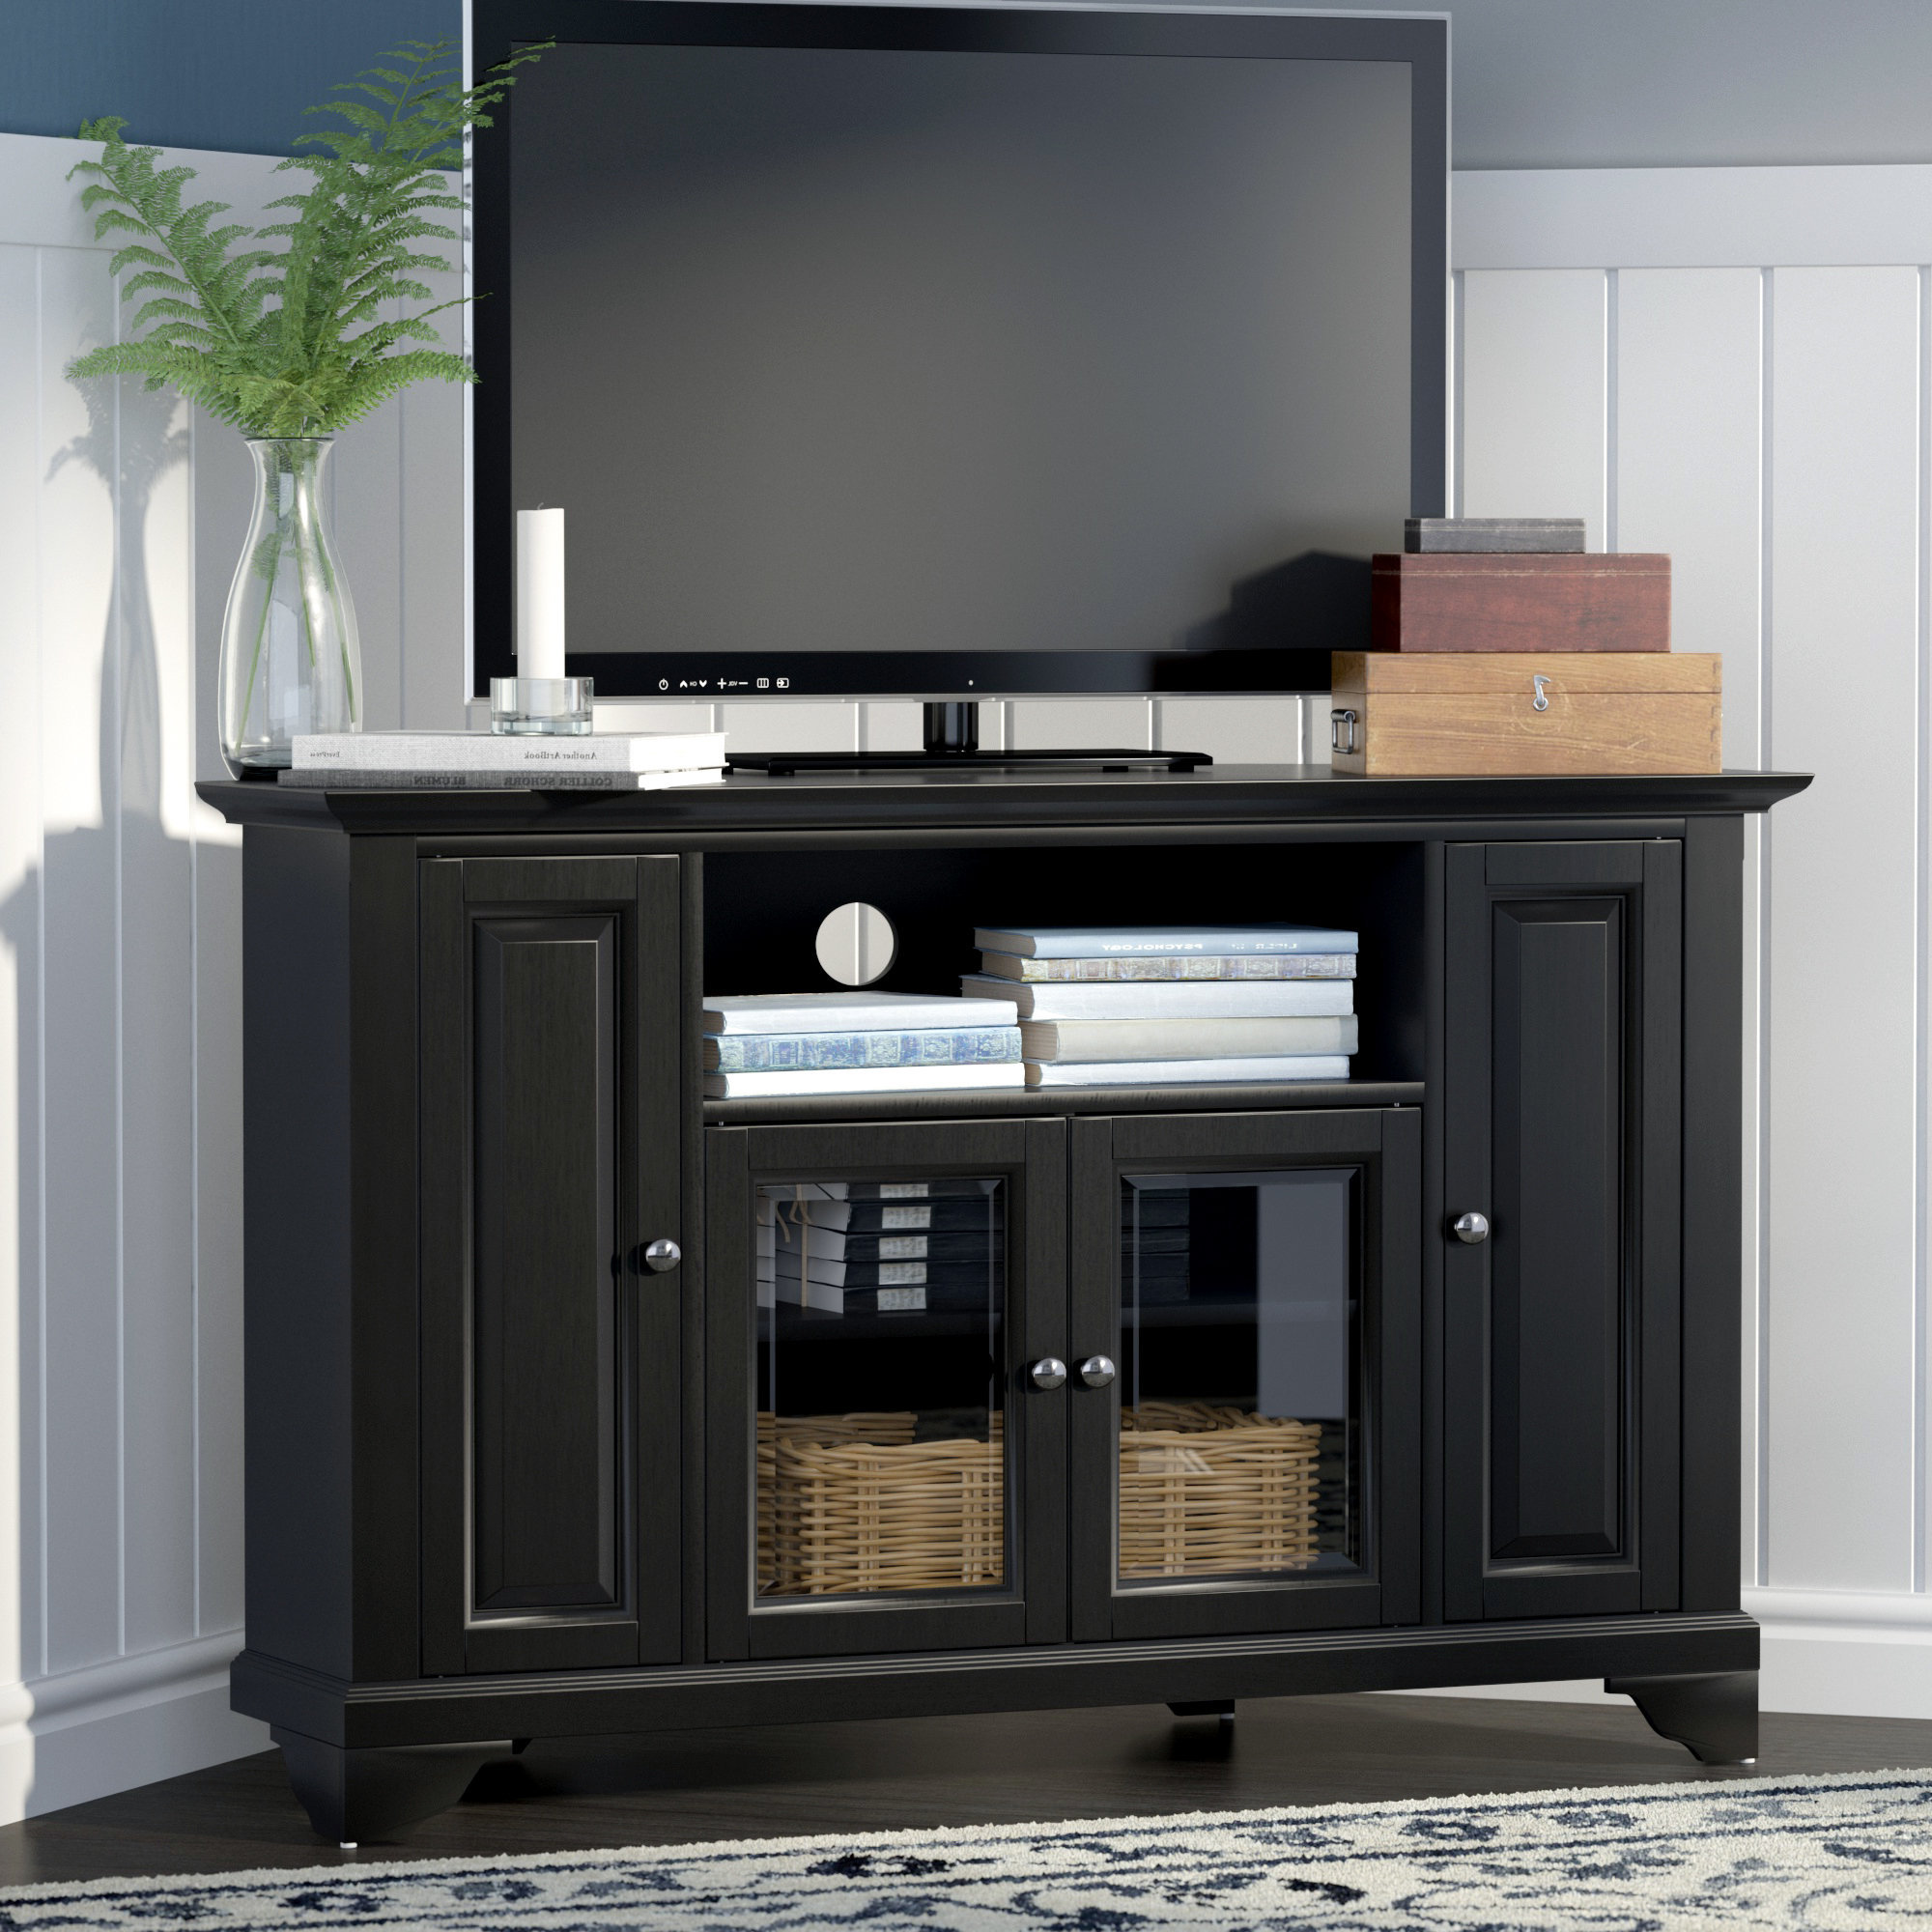 2018 Cream Corner Tv Stands Pertaining To Corner Tv Stands You'll Love (View 2 of 20)